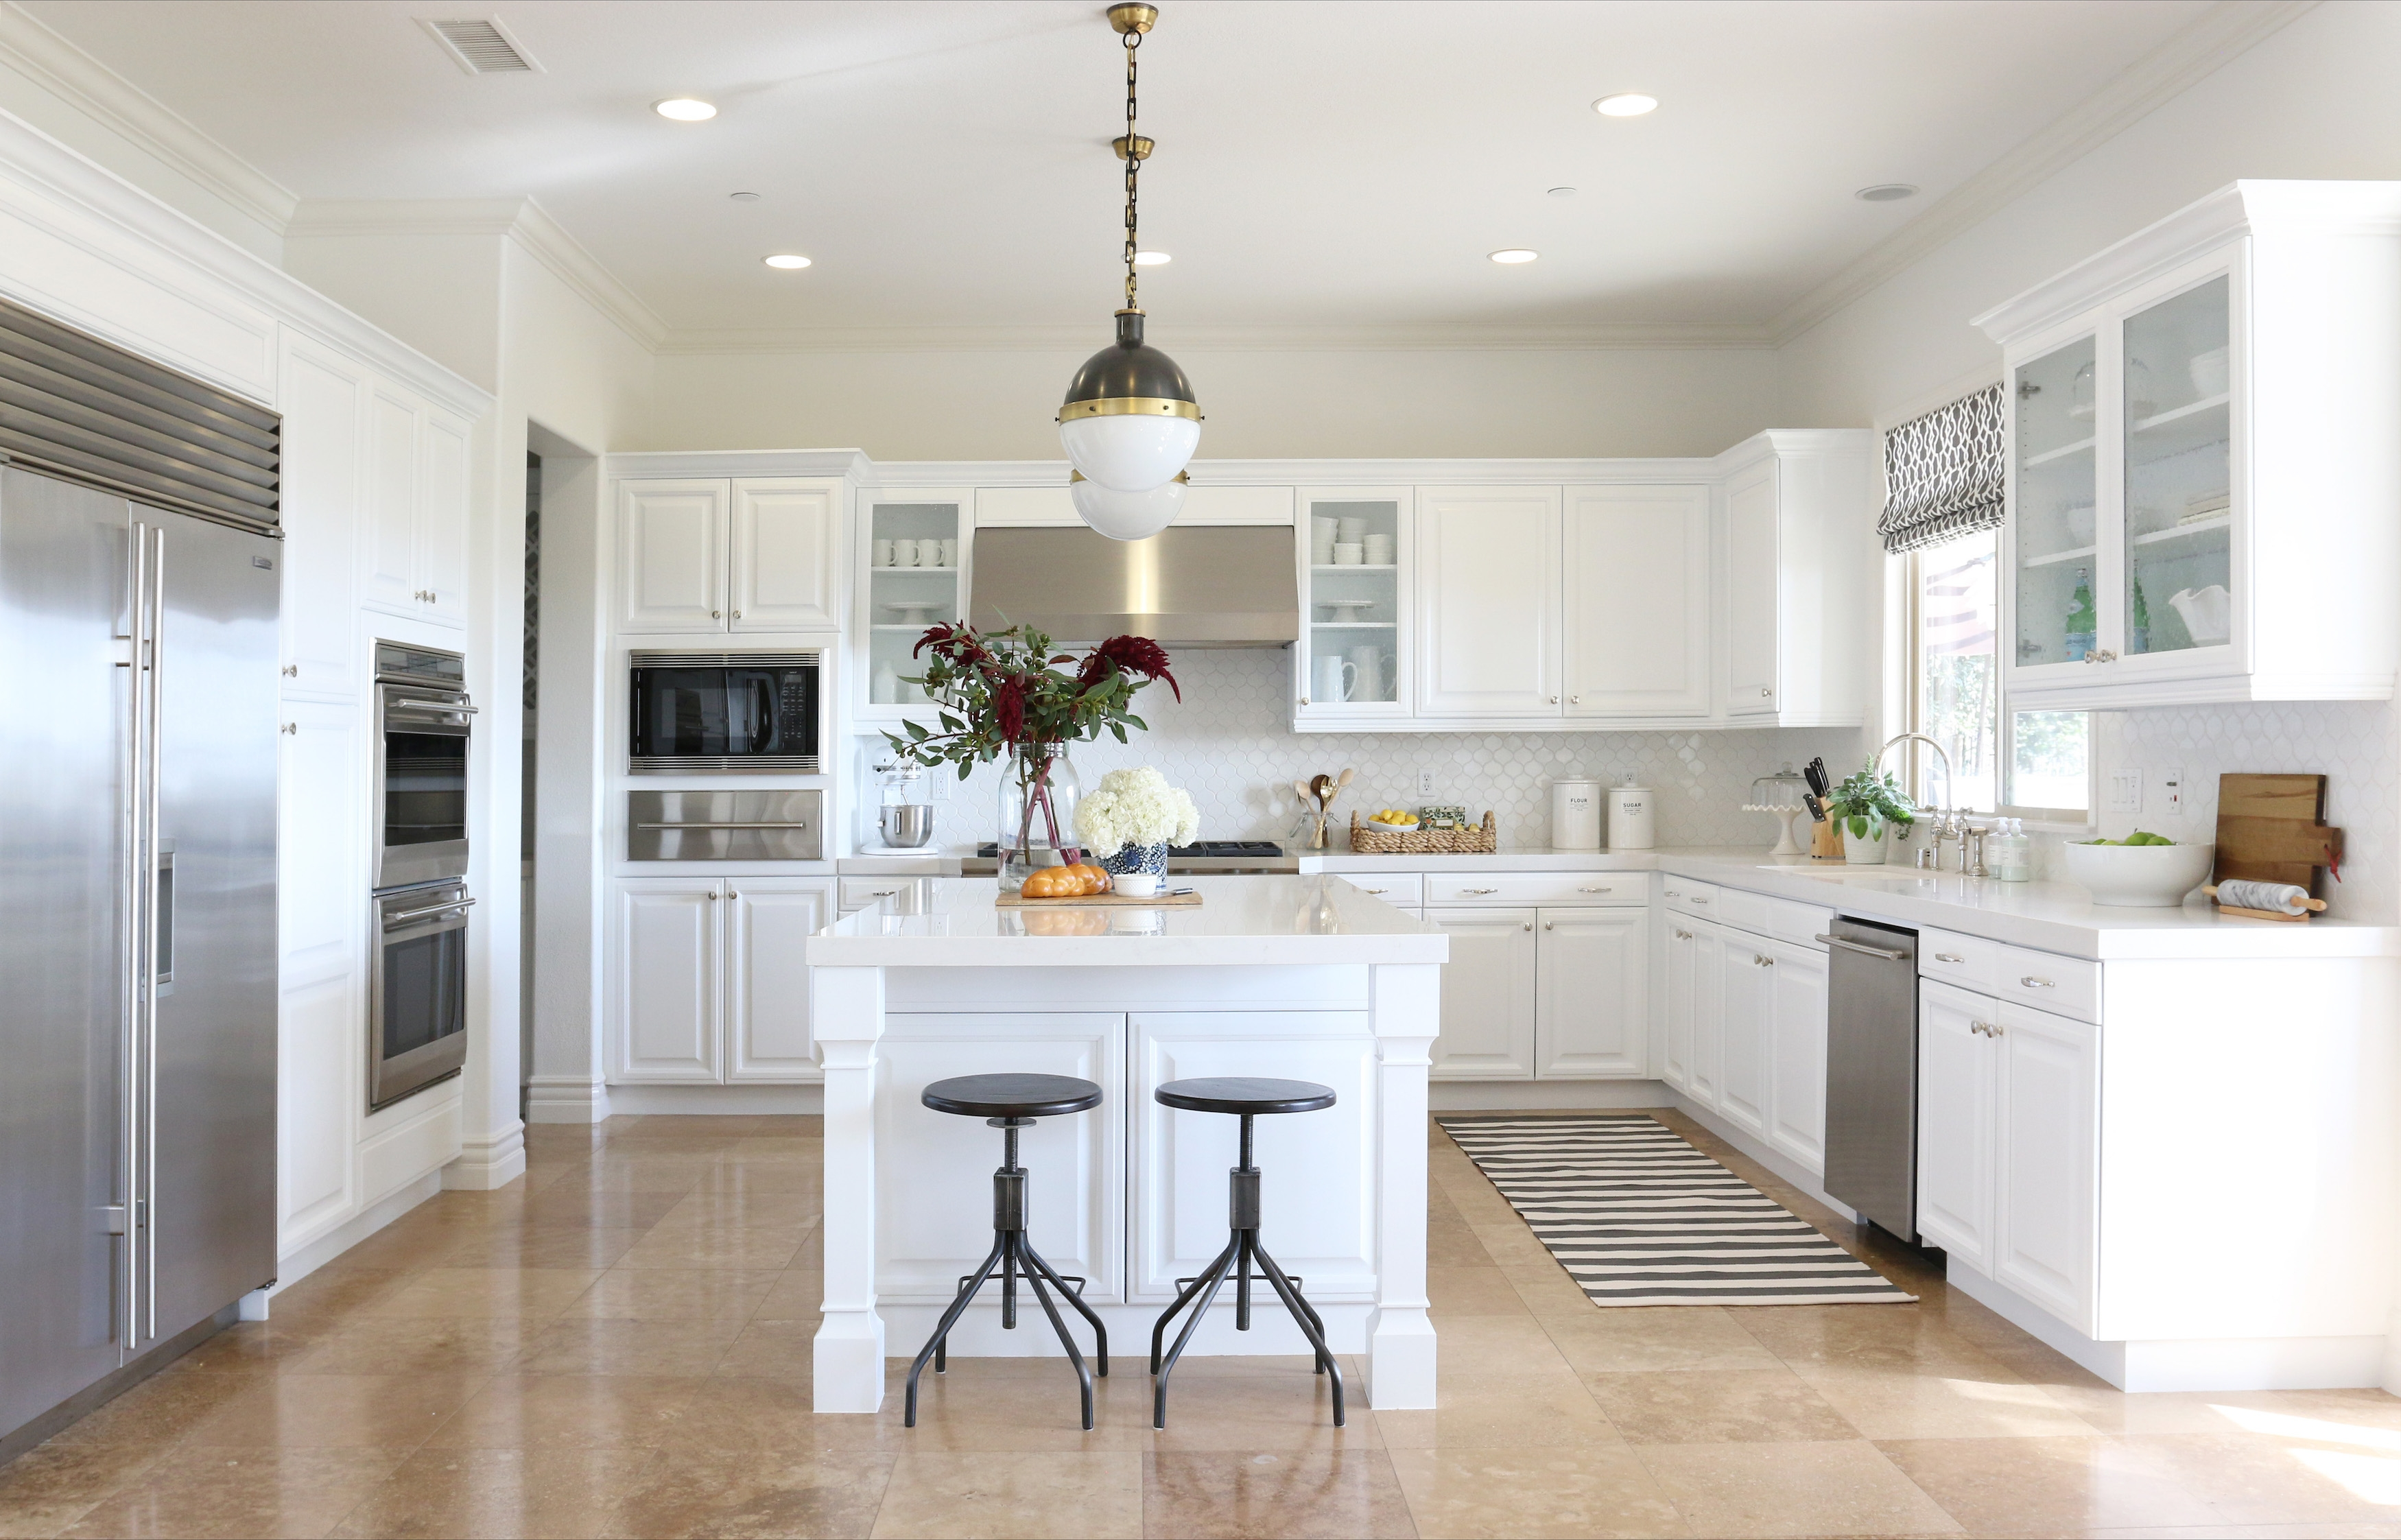 Permalink to White Cabinets Kitchen Design